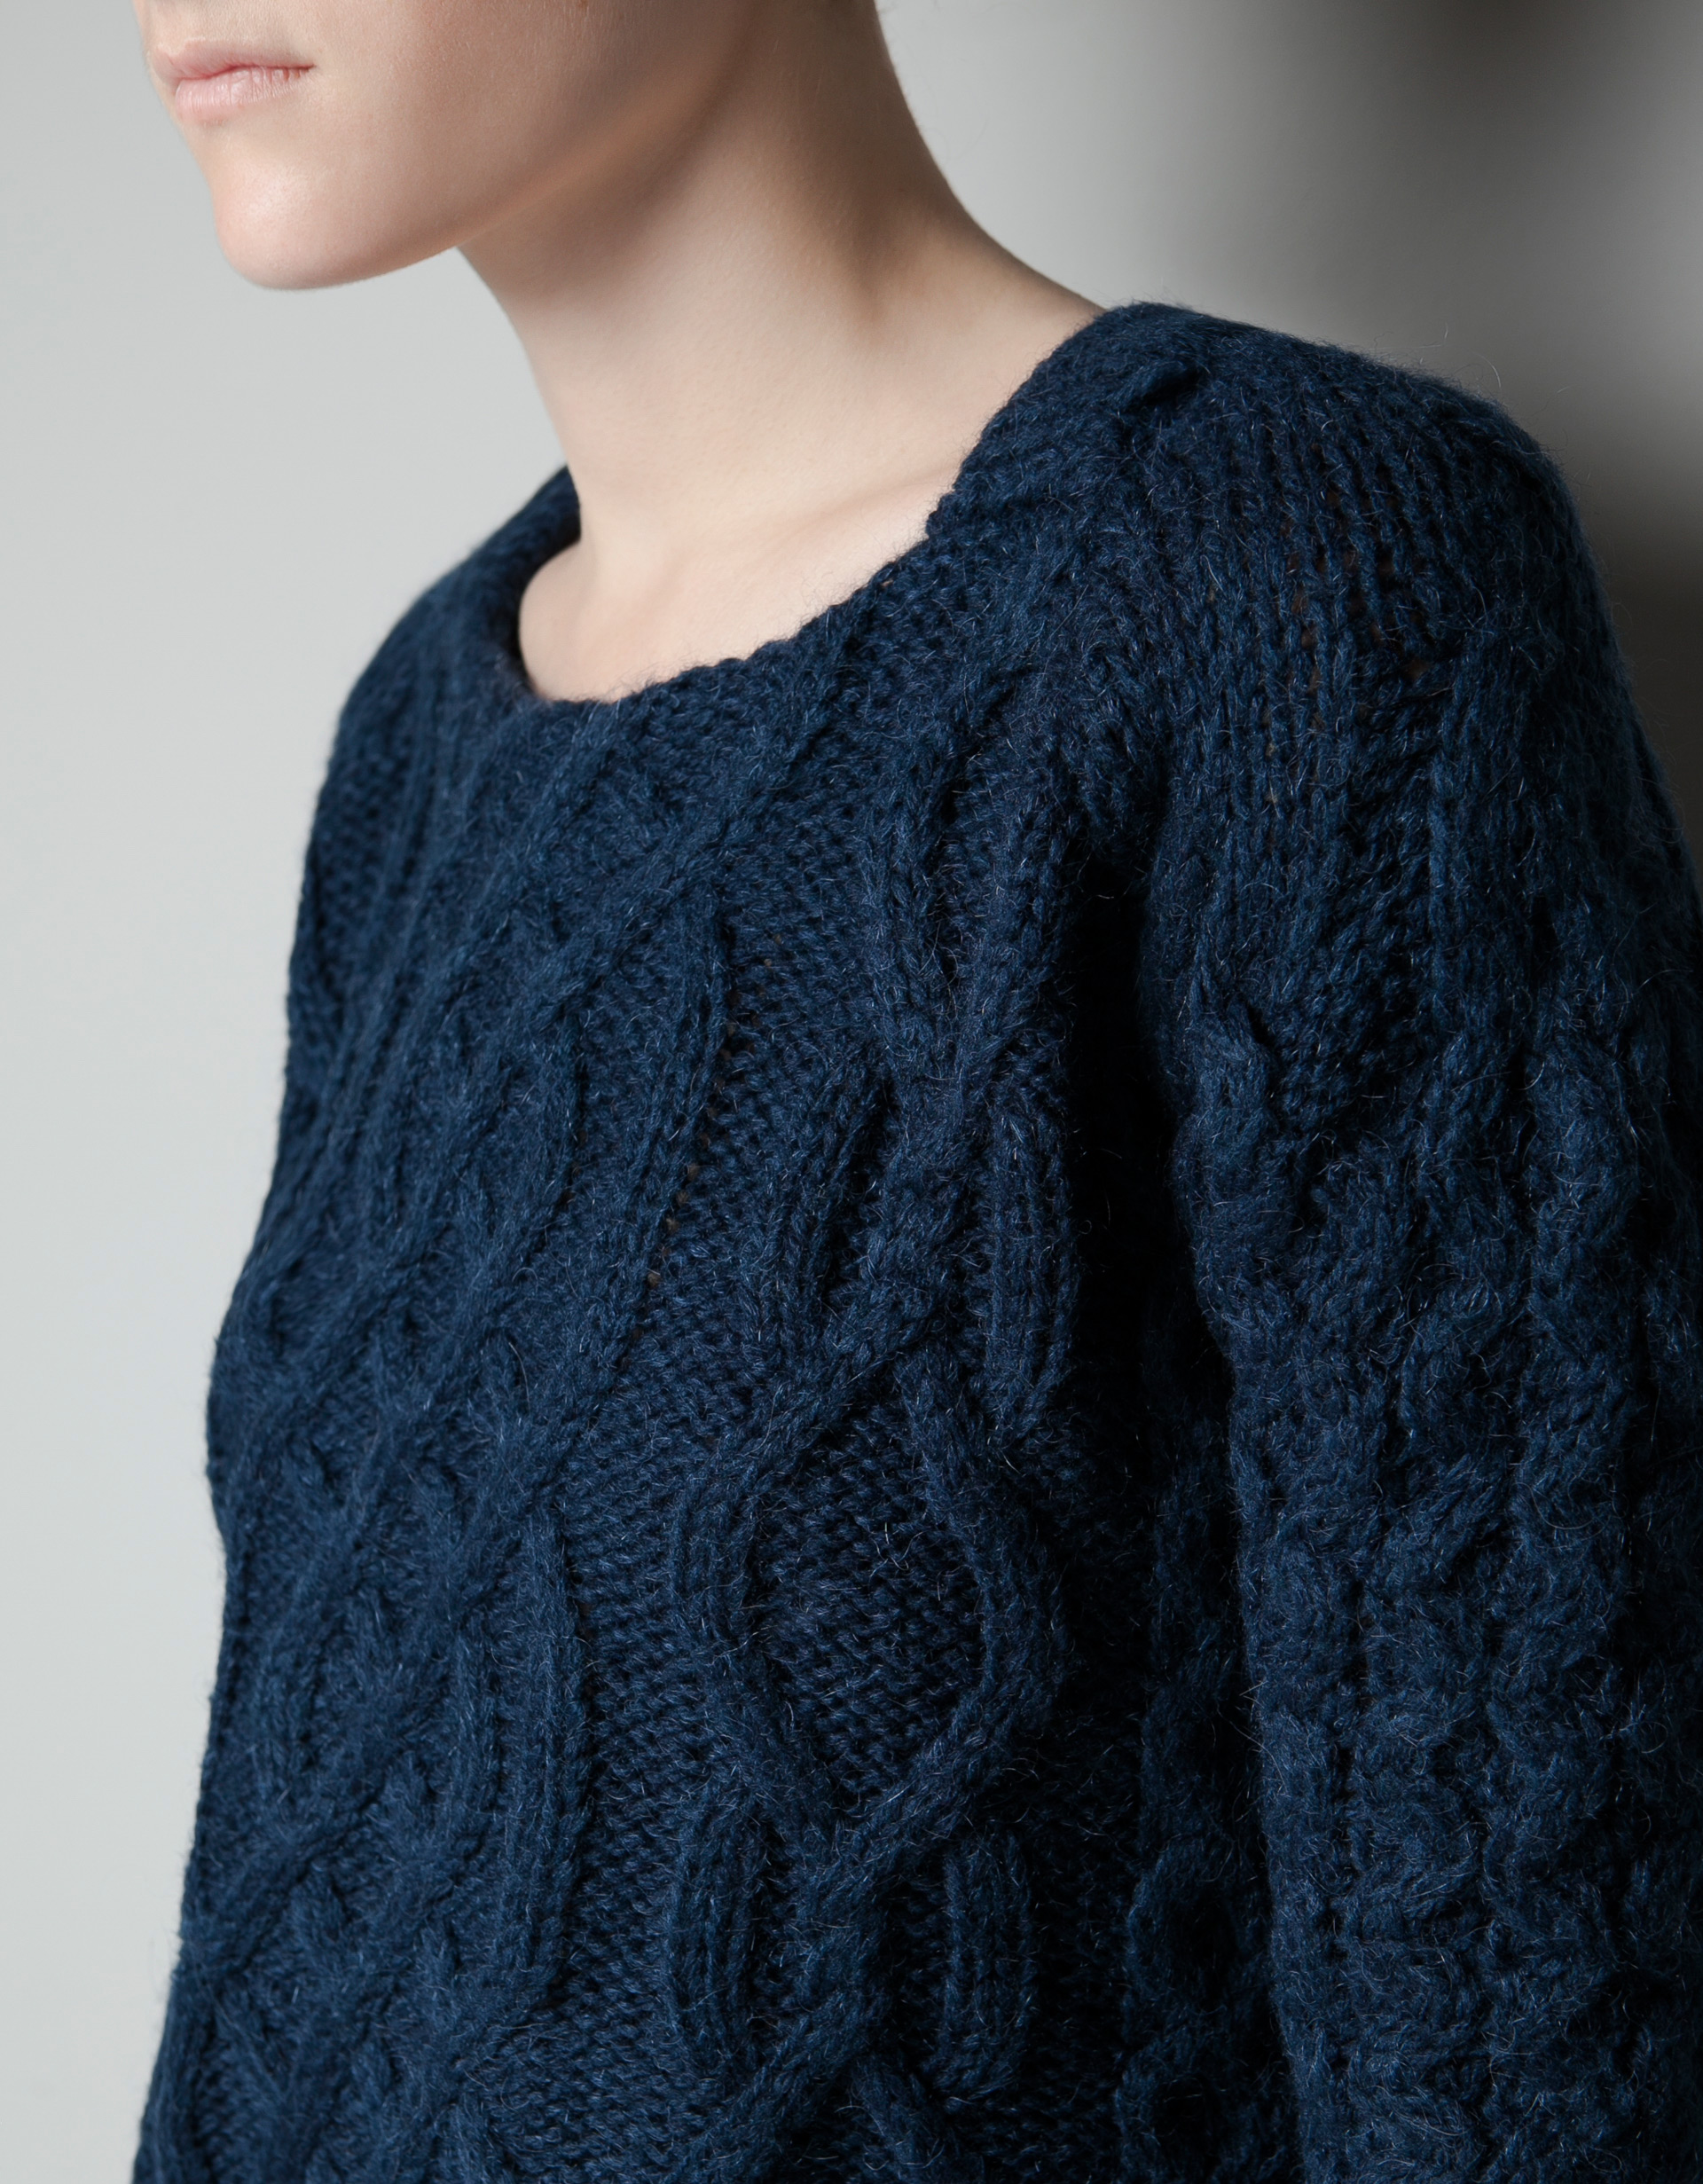 Collection Blue Cable Knit Sweater Pictures - Asianfashion